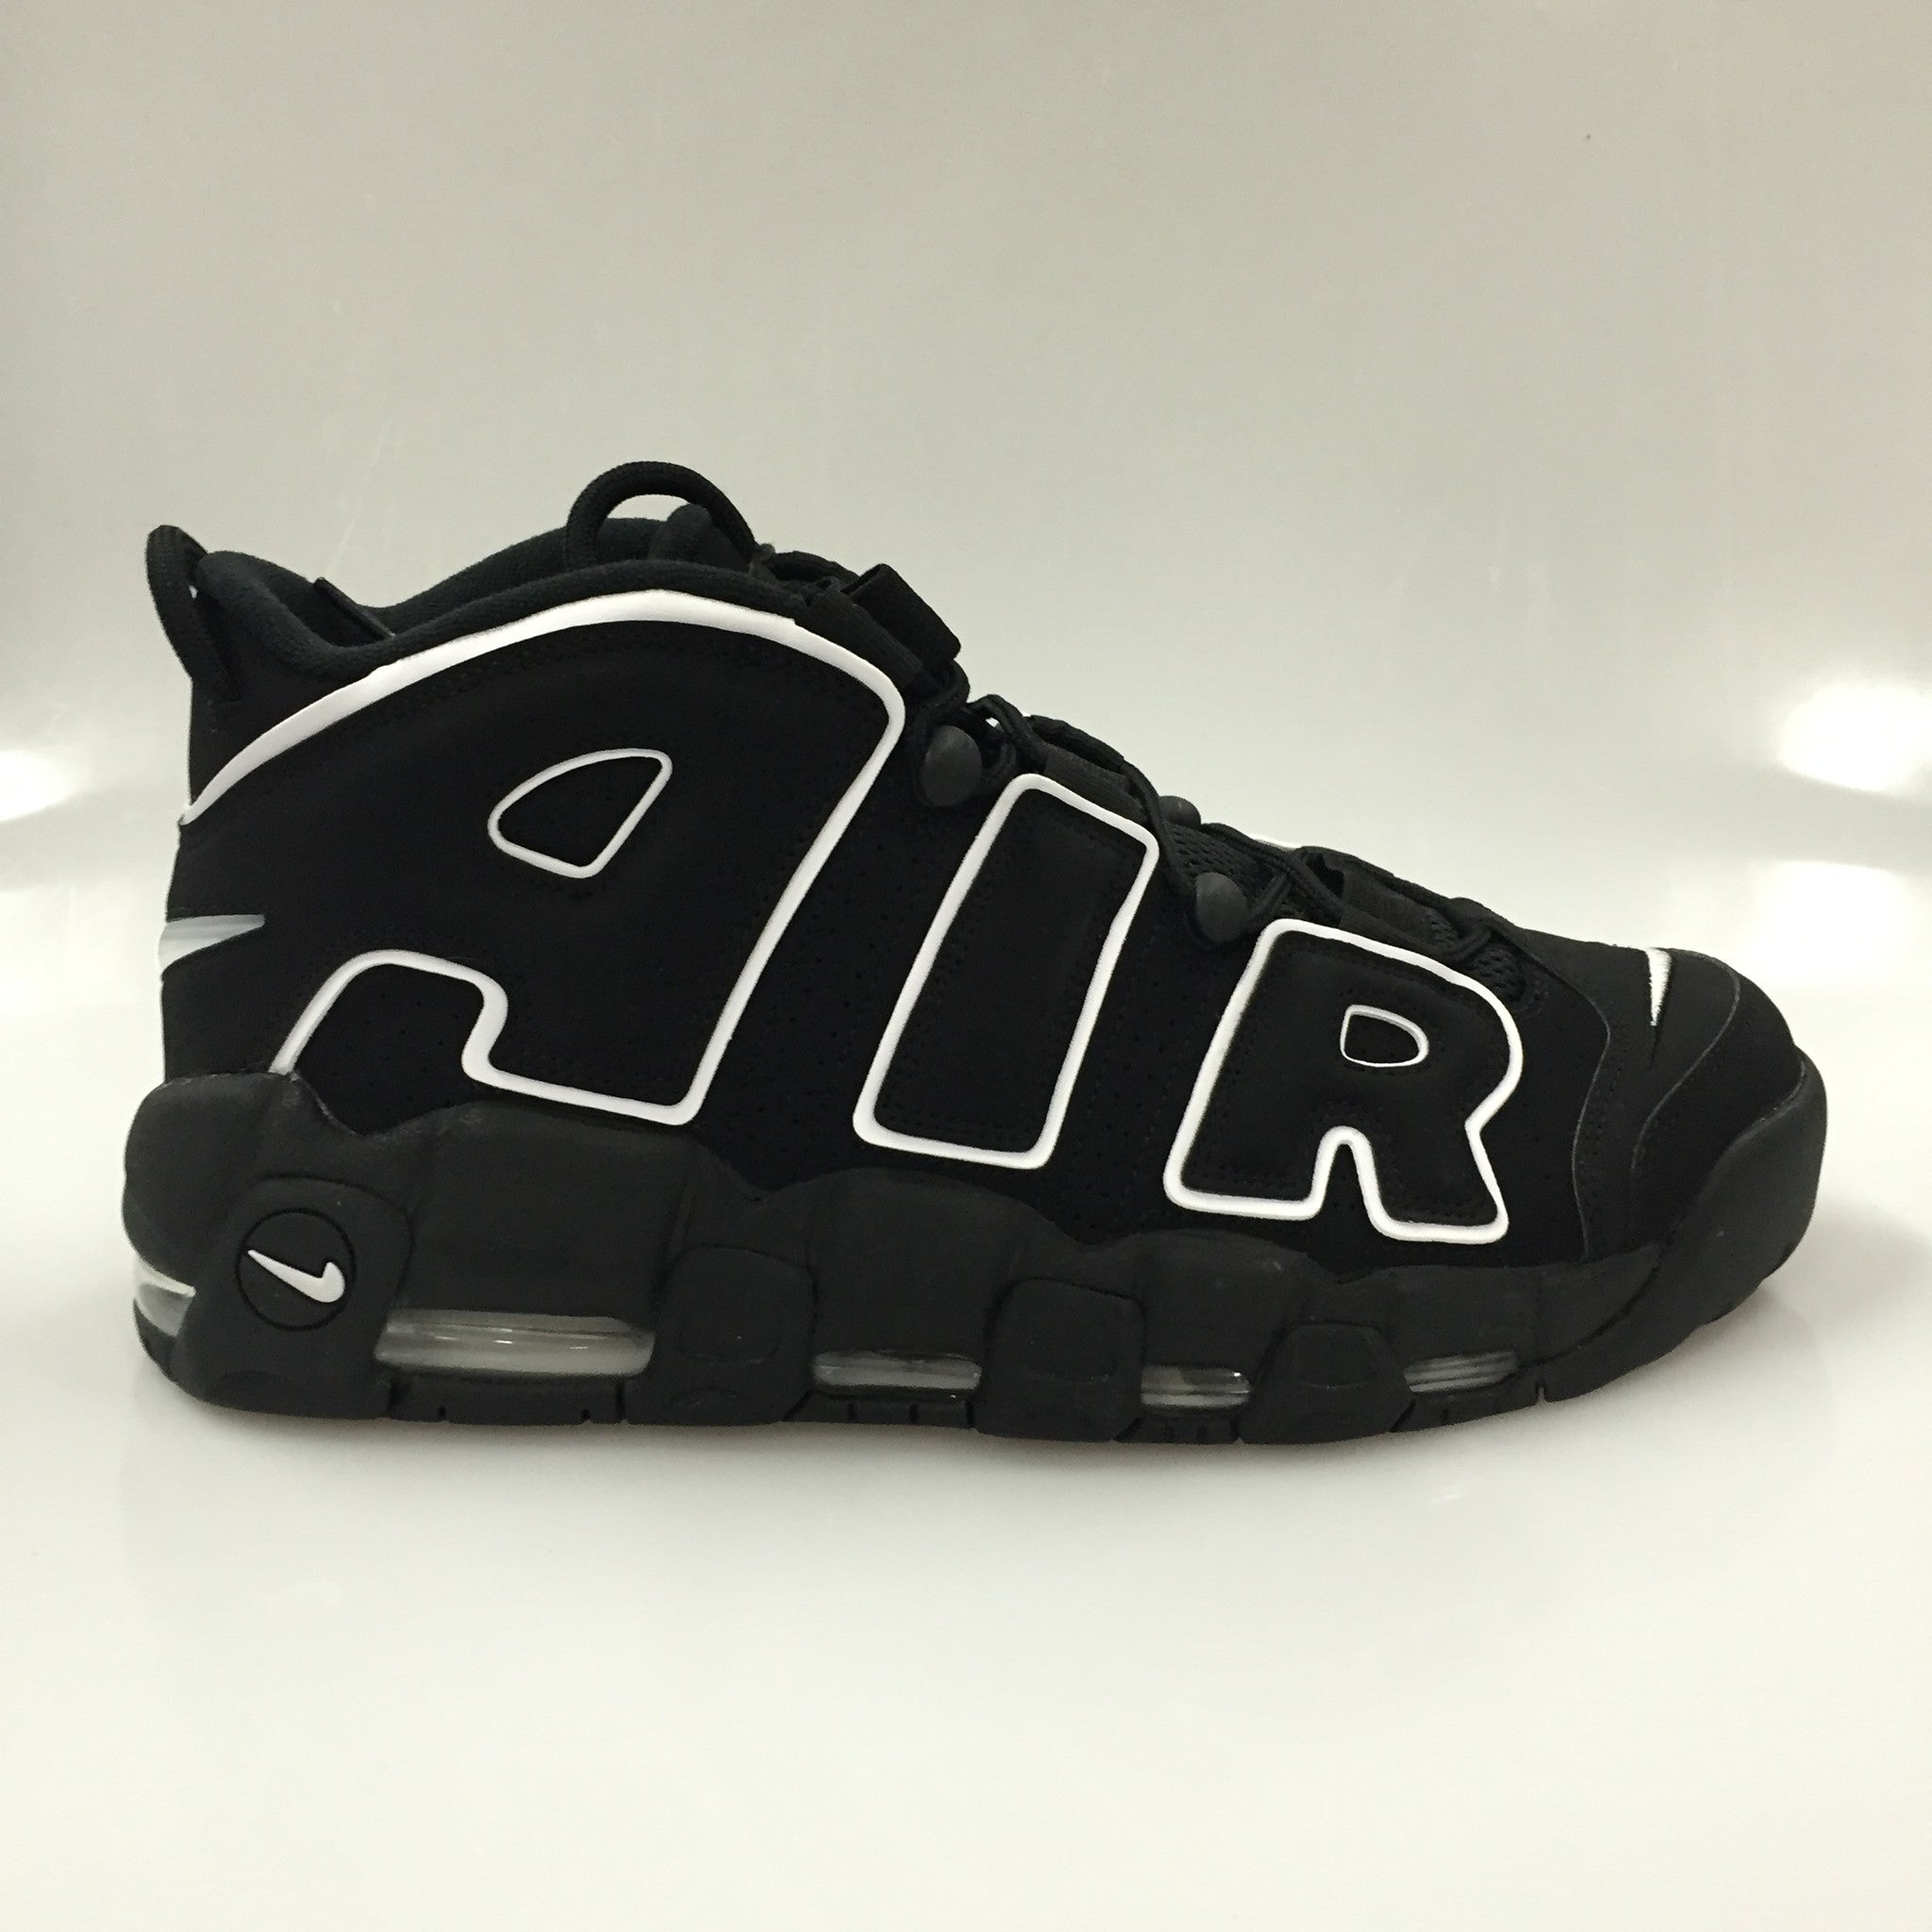 Nike Air More Uptempo Size 11.5 DS